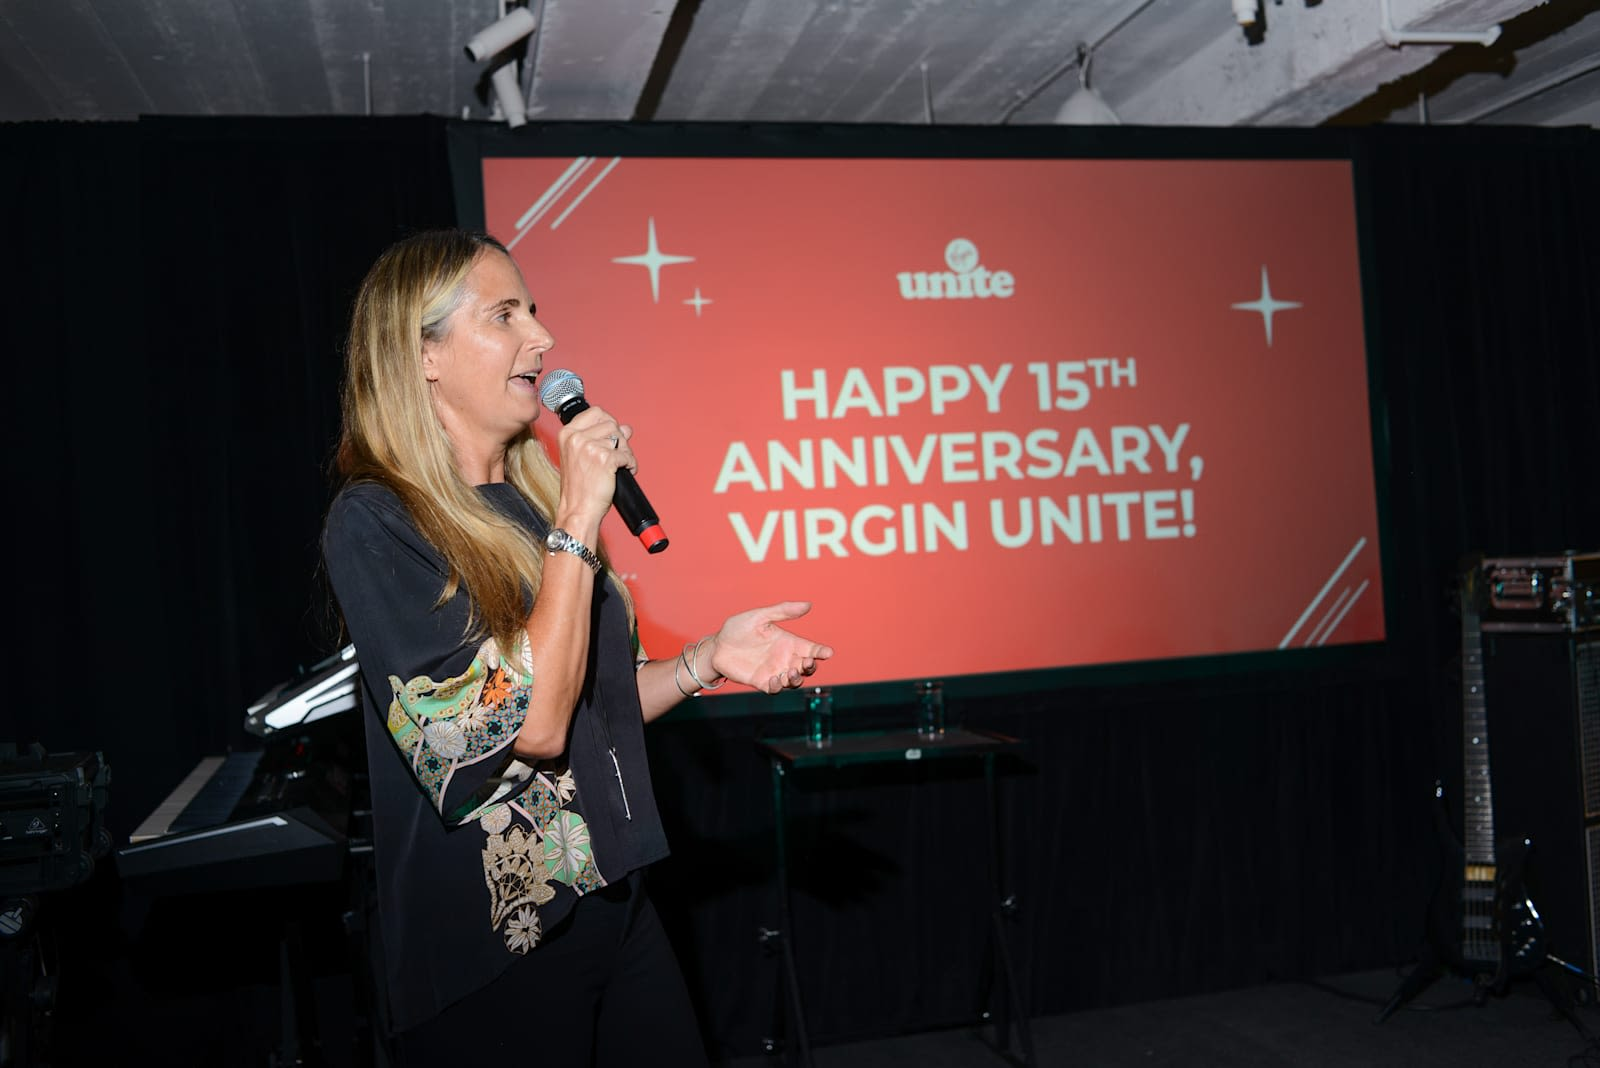 Image from Virgin Unite